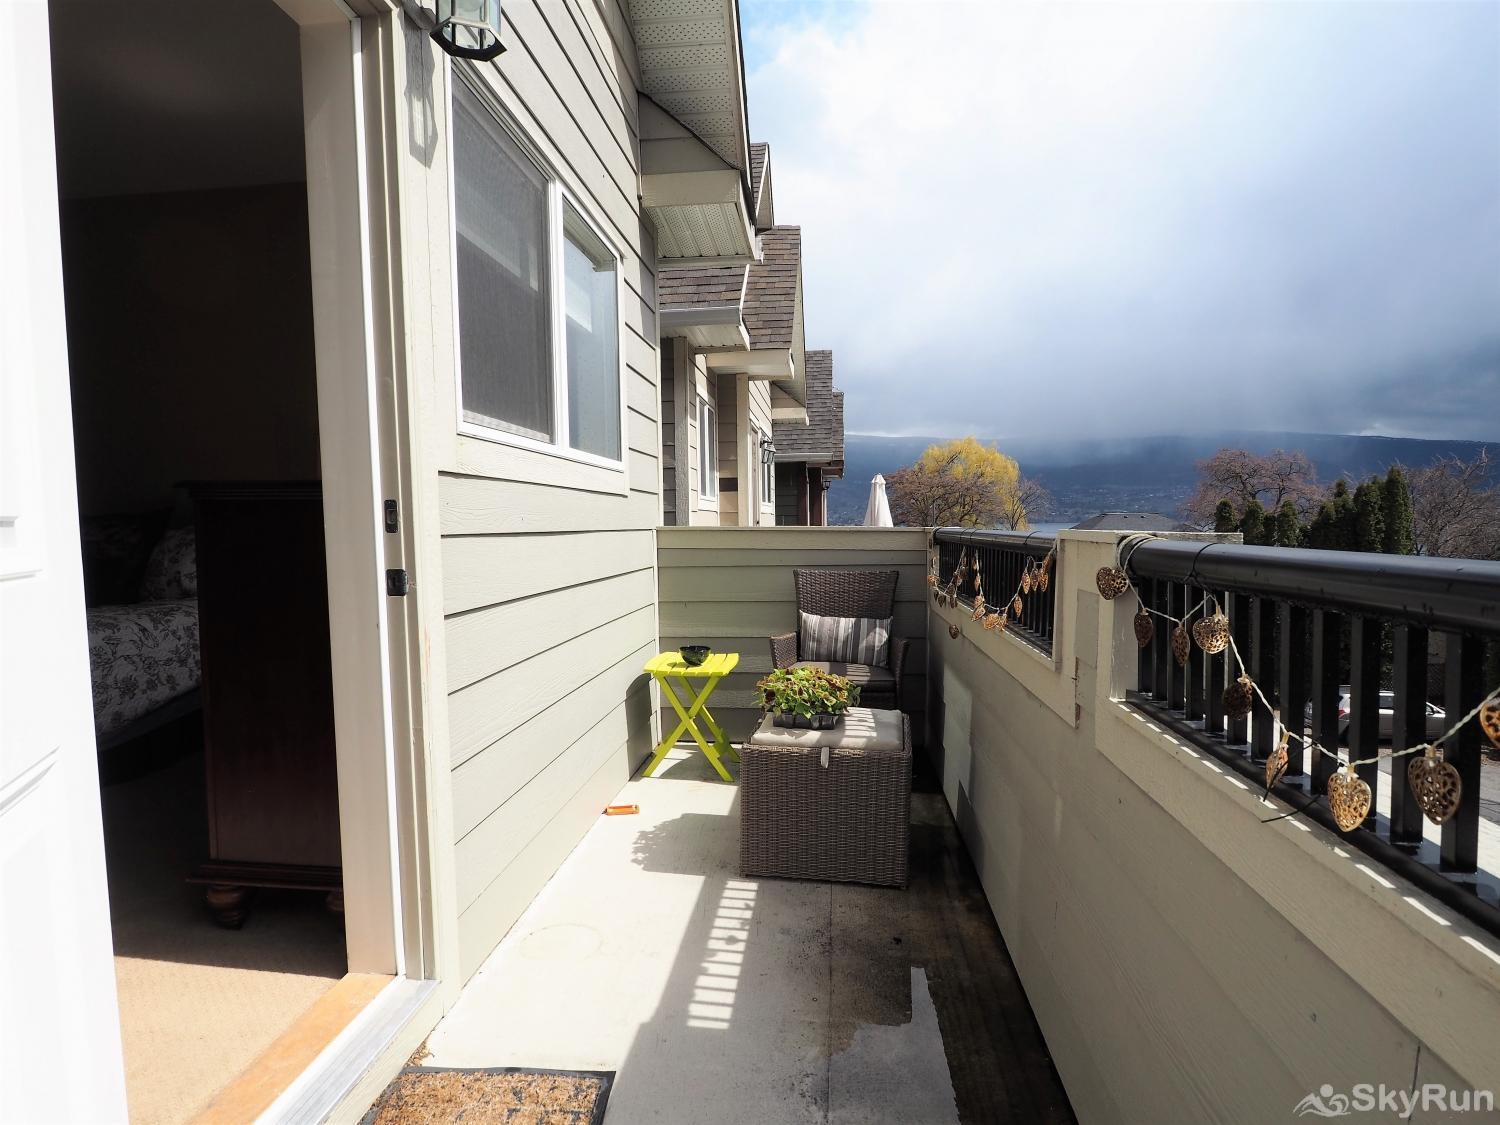 Old Summerland 3 bedroom home Walk out on to your own private deck from the master suite.  Has a gorgeous peek-a-boo view of the lake